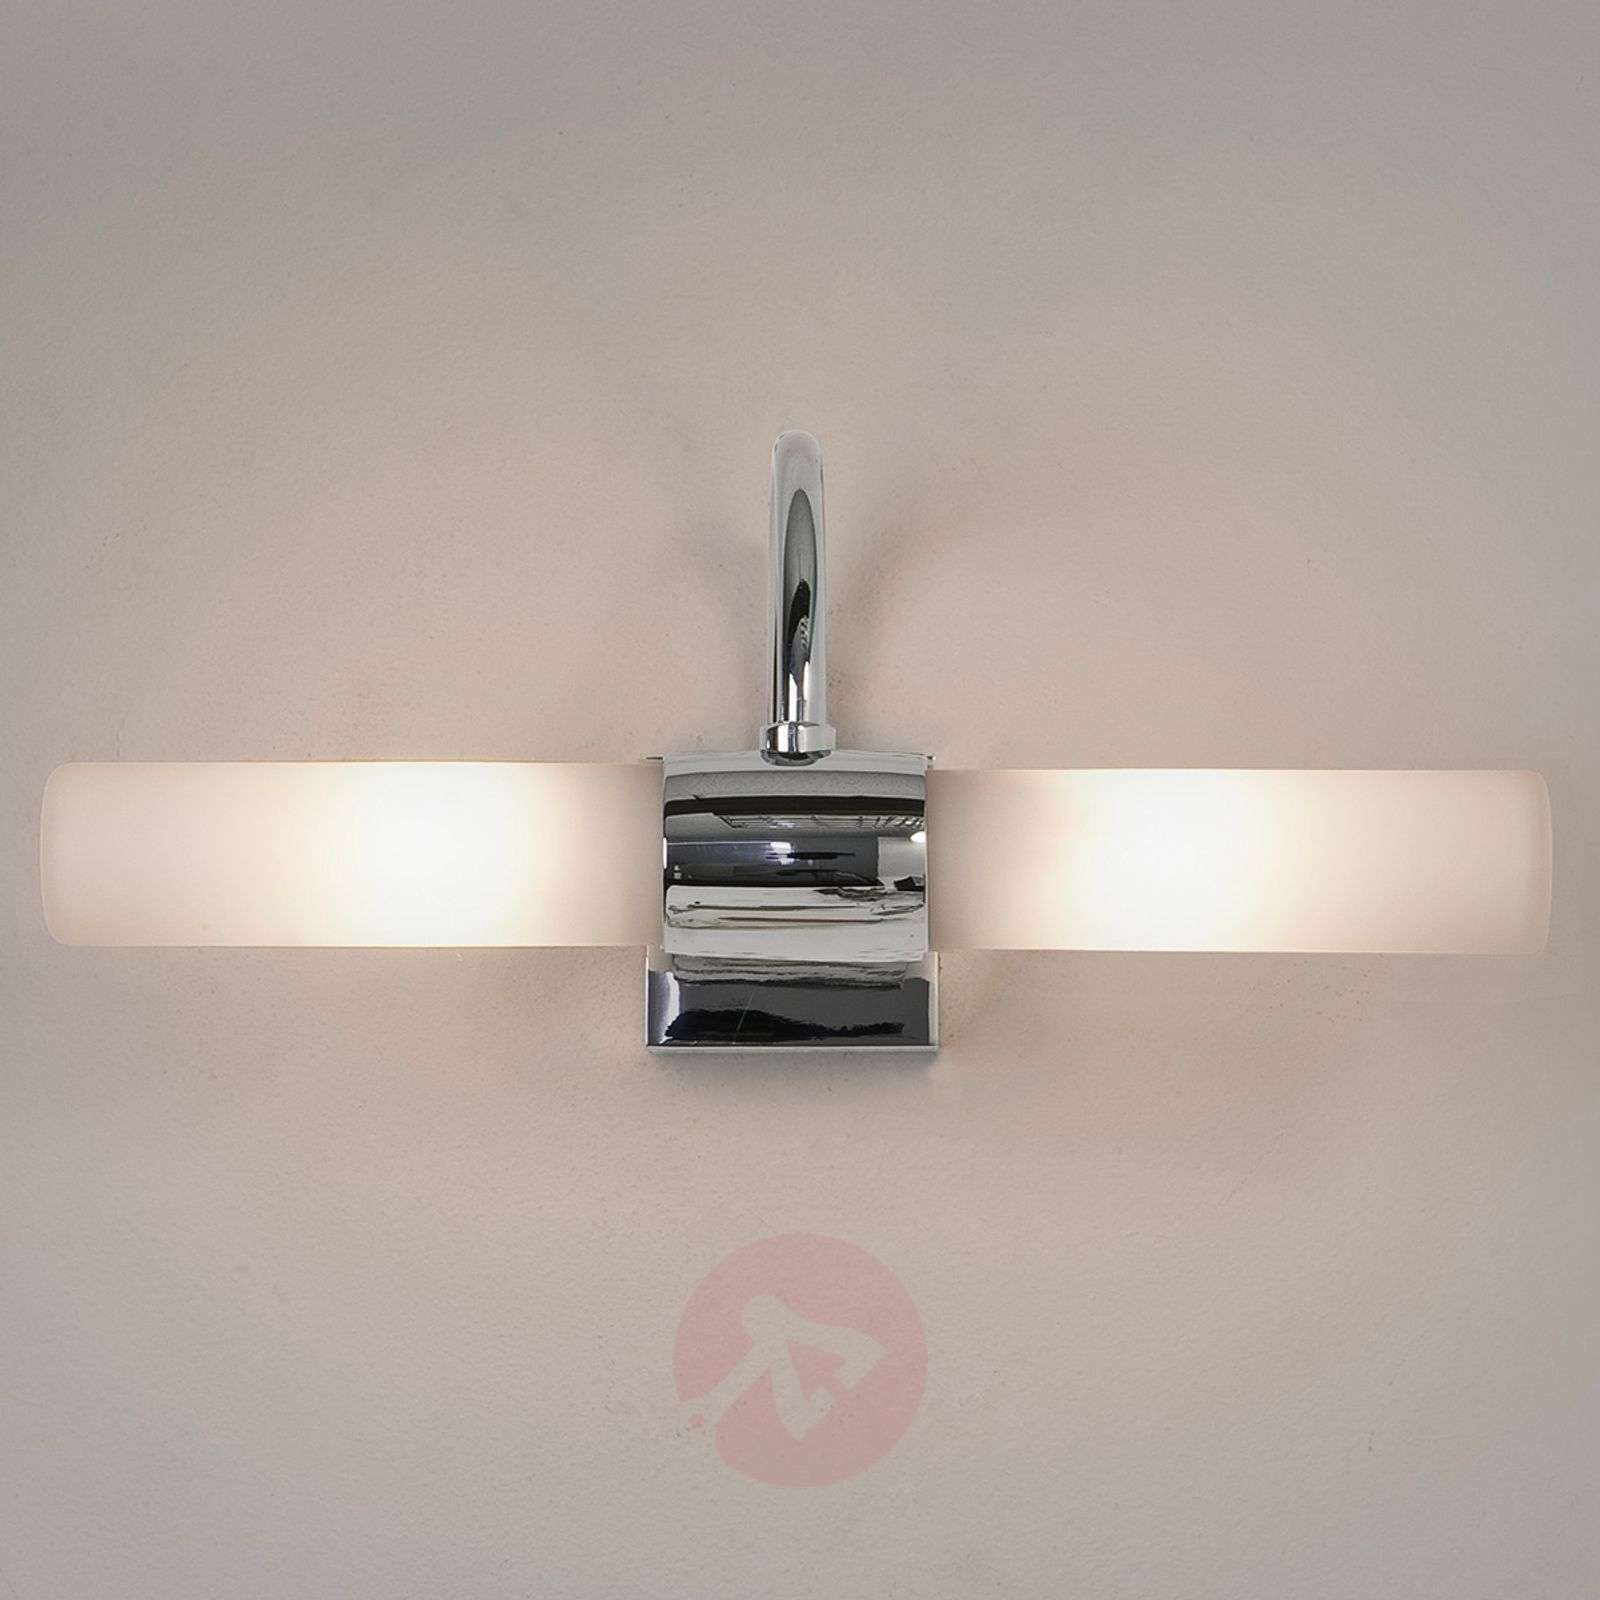 Dayton Wall Light for the Mirror White-1020020-05